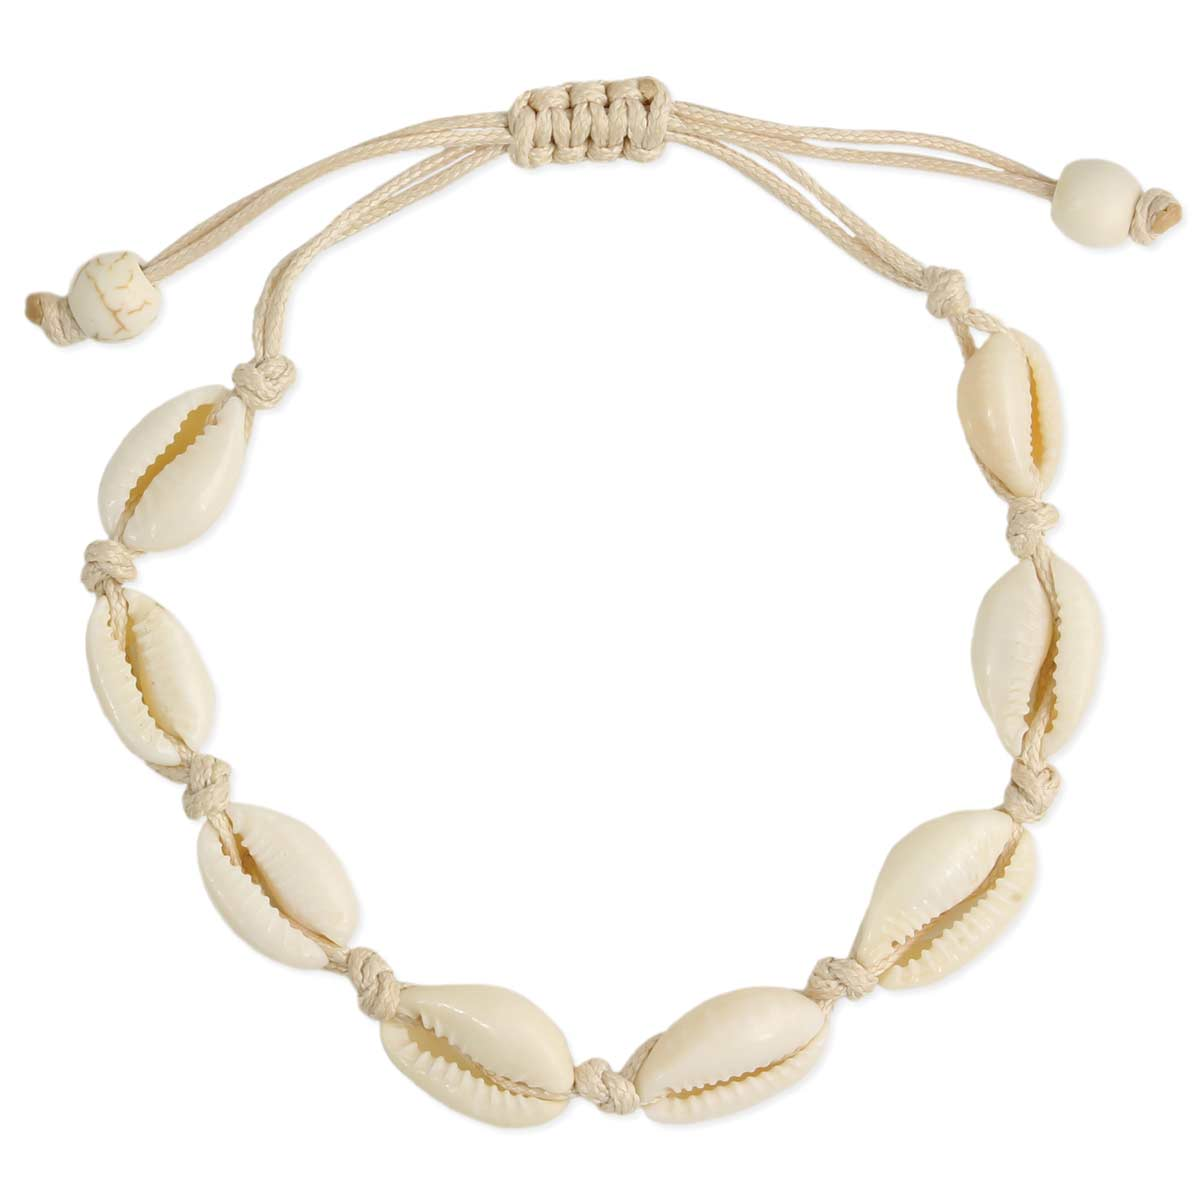 Cream cord cowry shell pull anklet or bracelet